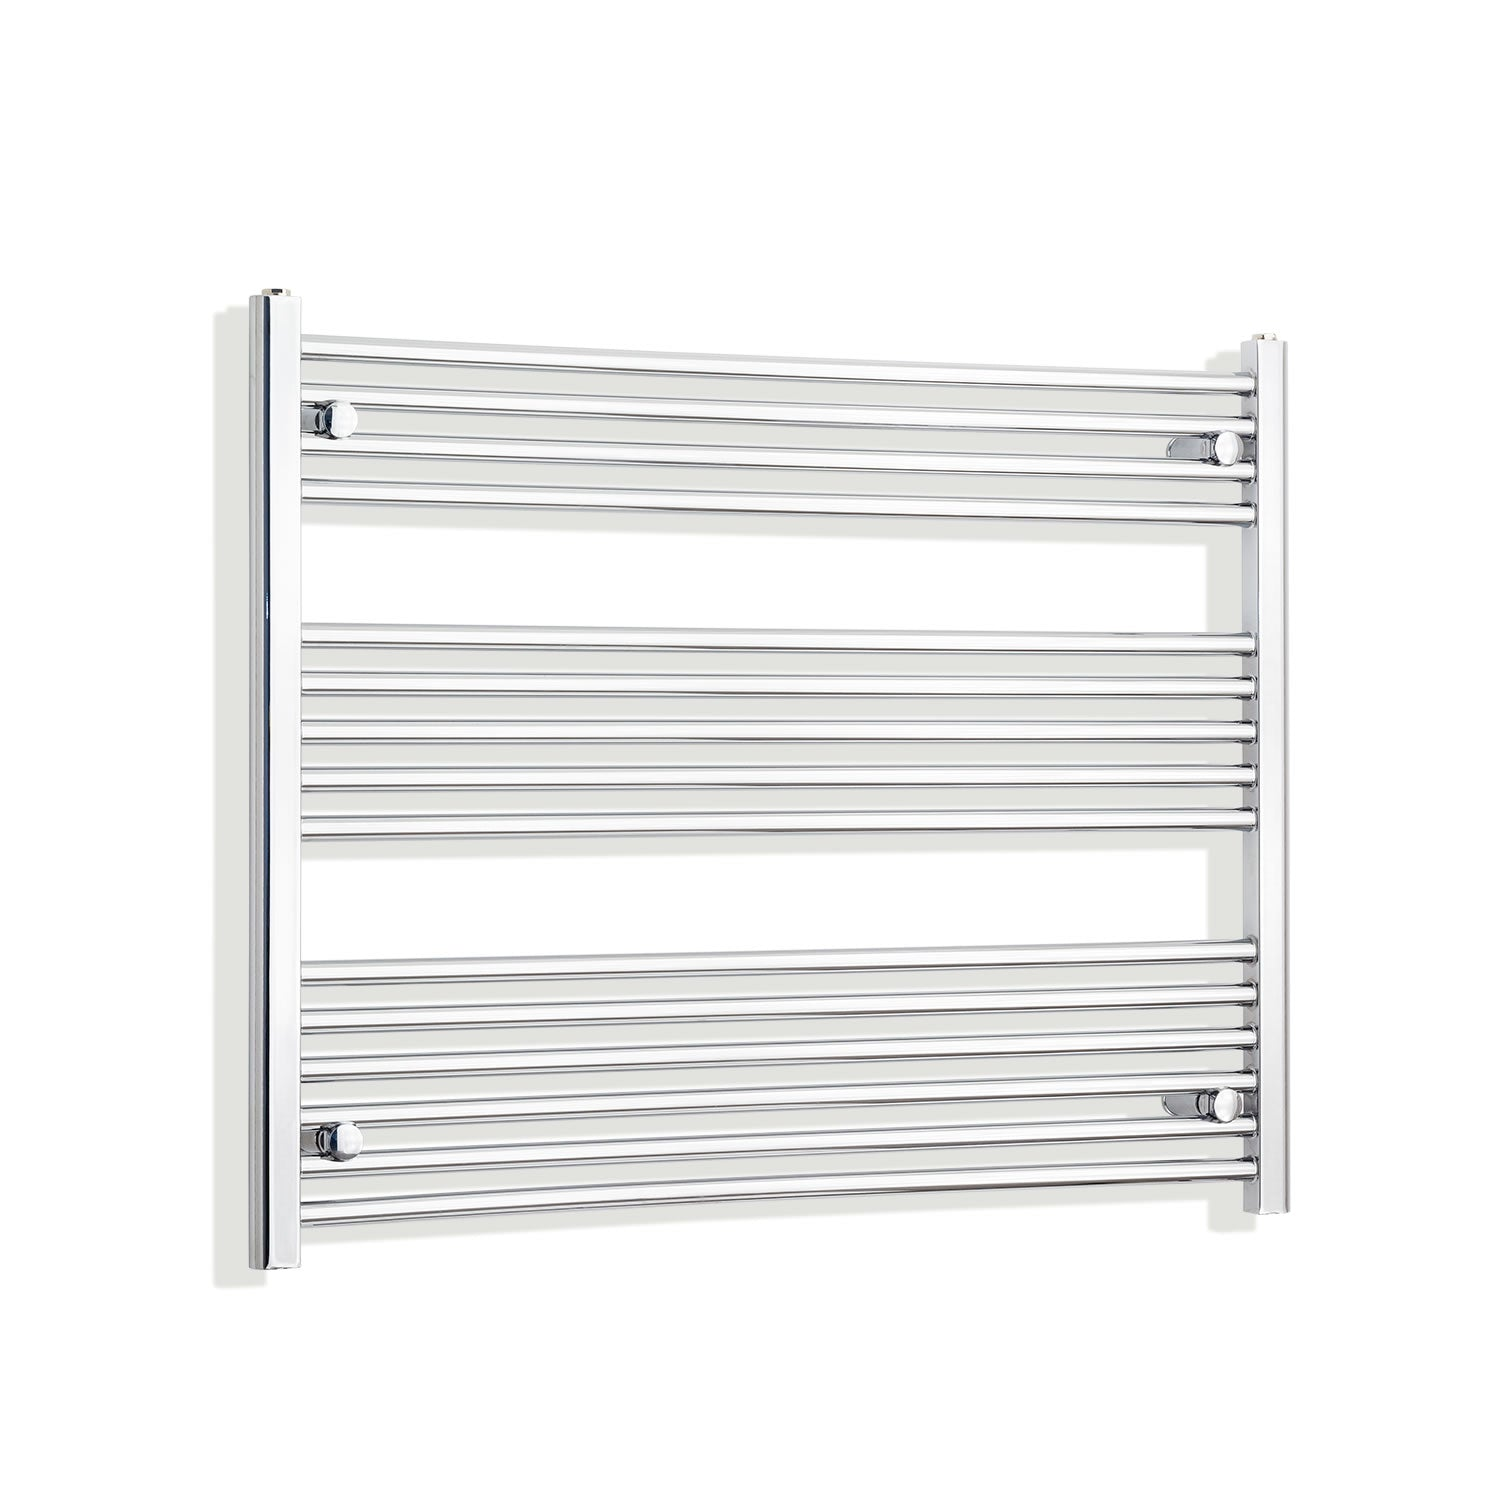 1200mm Wide 800mm High Flat Chrome Heated Towel Rail Radiator HTR,Towel Rail Only